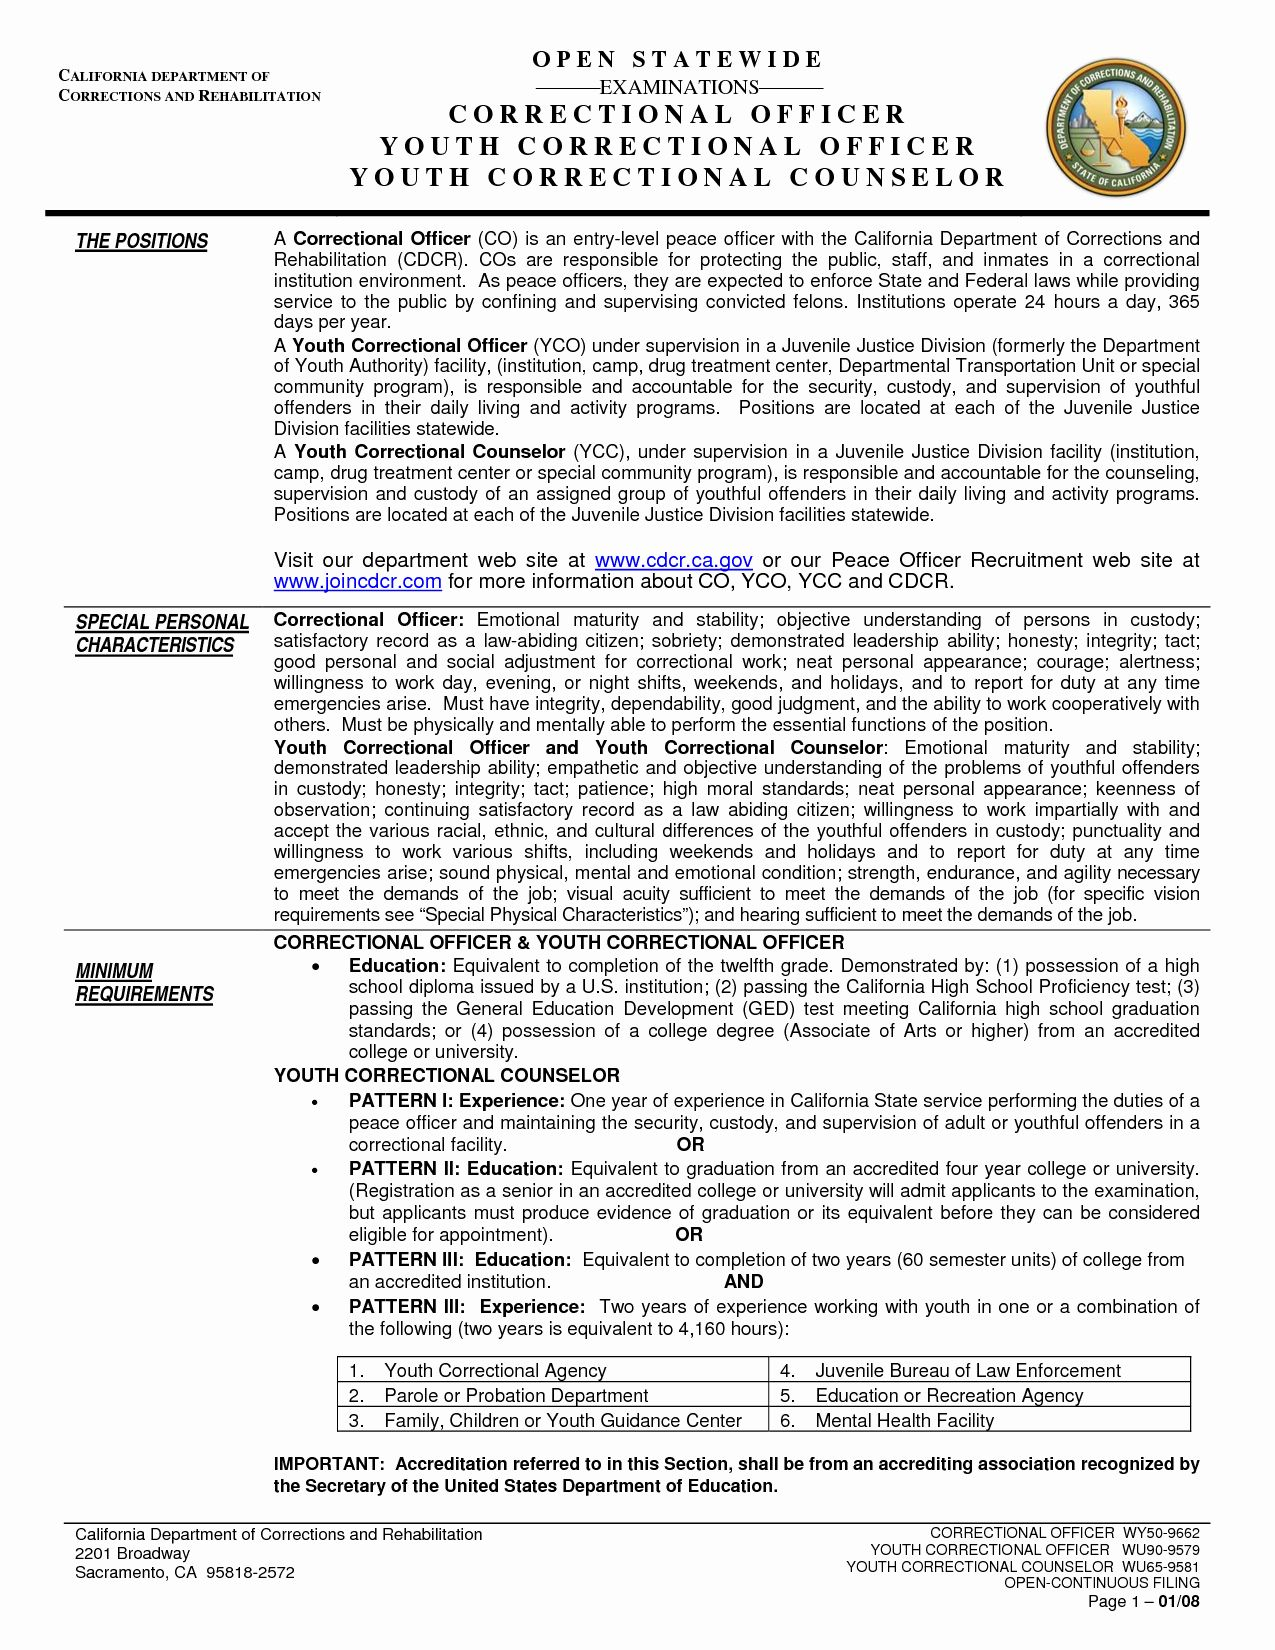 27 correctional officer resume objective in 2020 resume